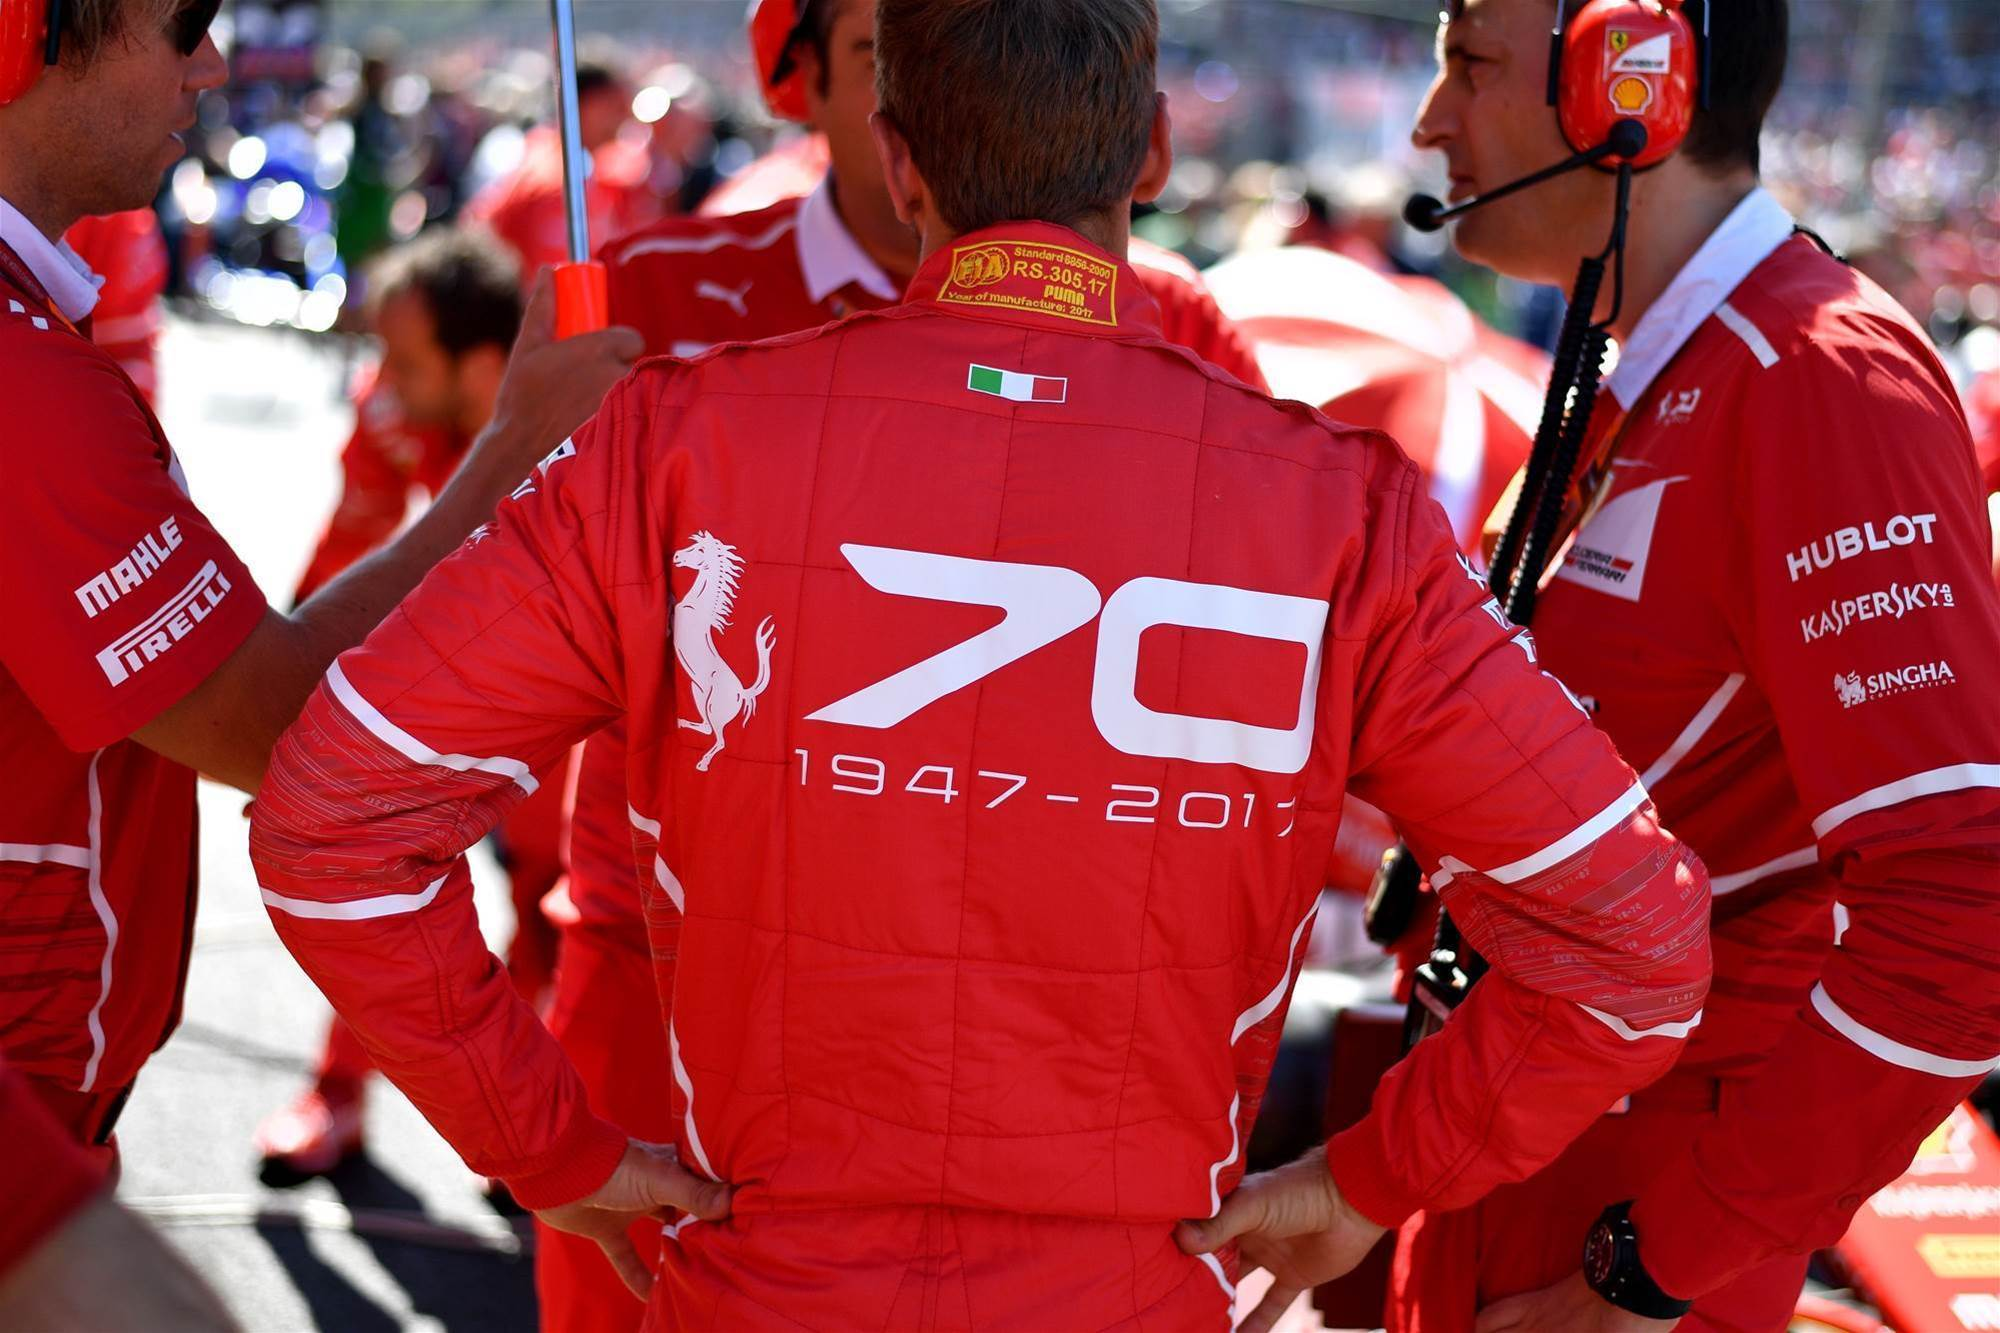 We screwed up: Ferrari boss